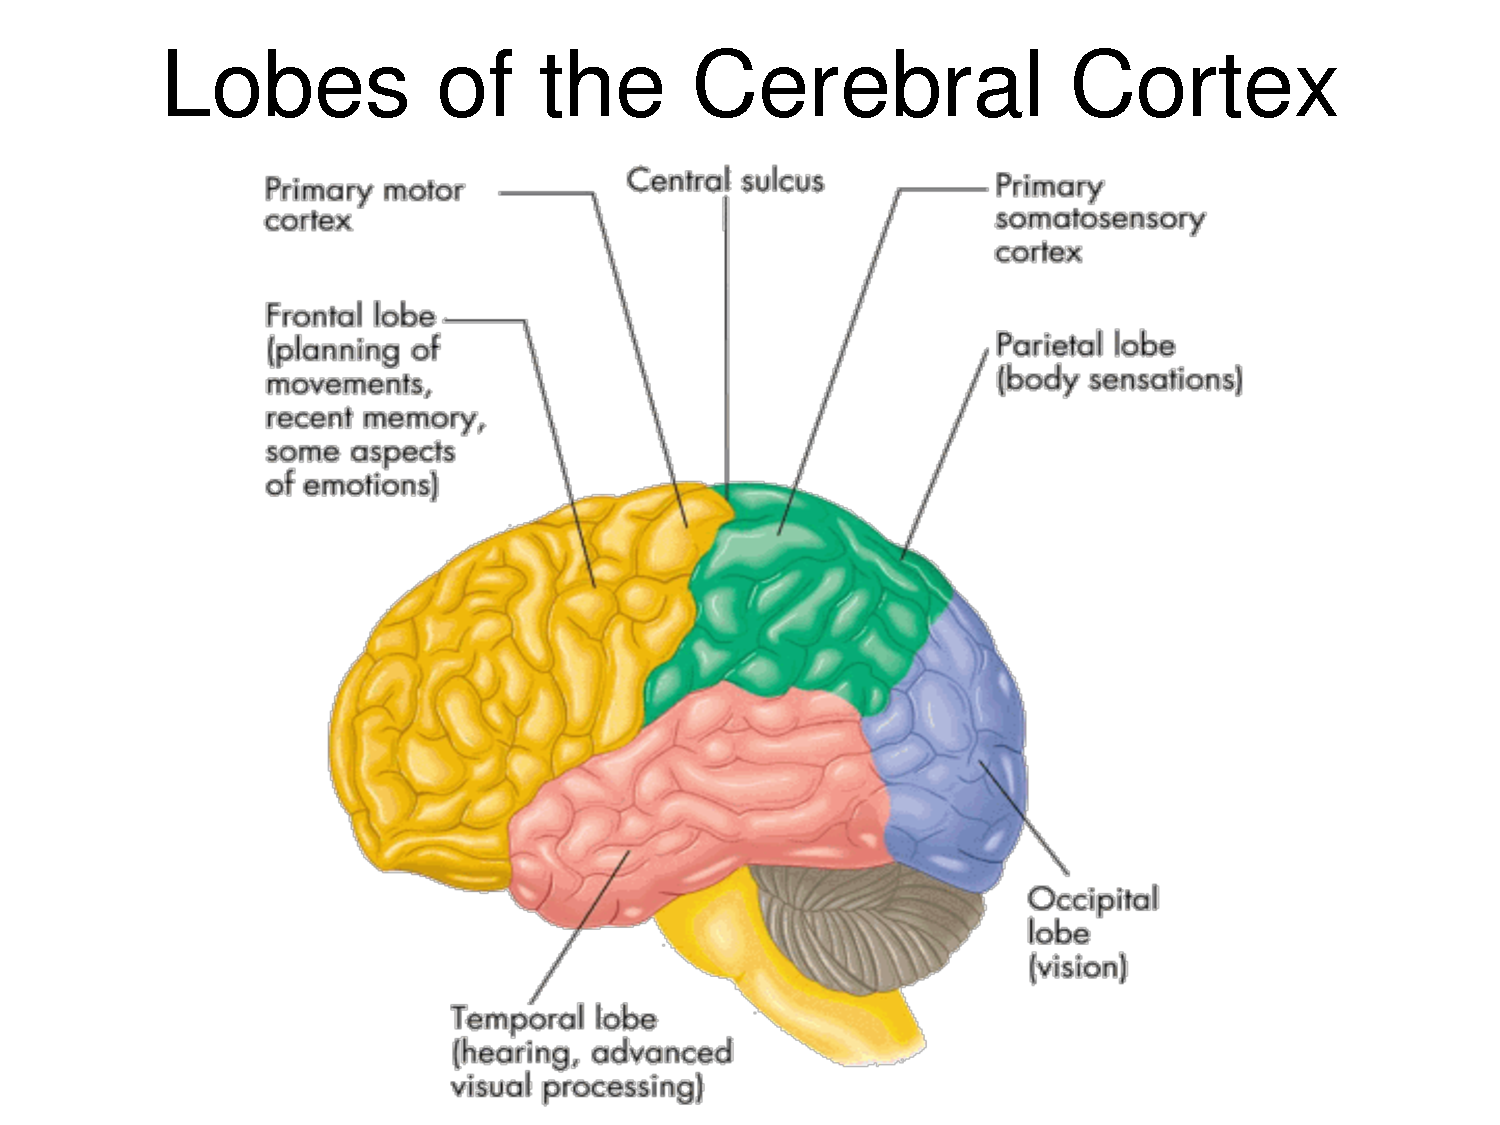 Human Brain Diagram Cerebrum 2007 Nissan Titan Parts Lobes Of The Cerebral Cortex Icu Nursing Pinterest